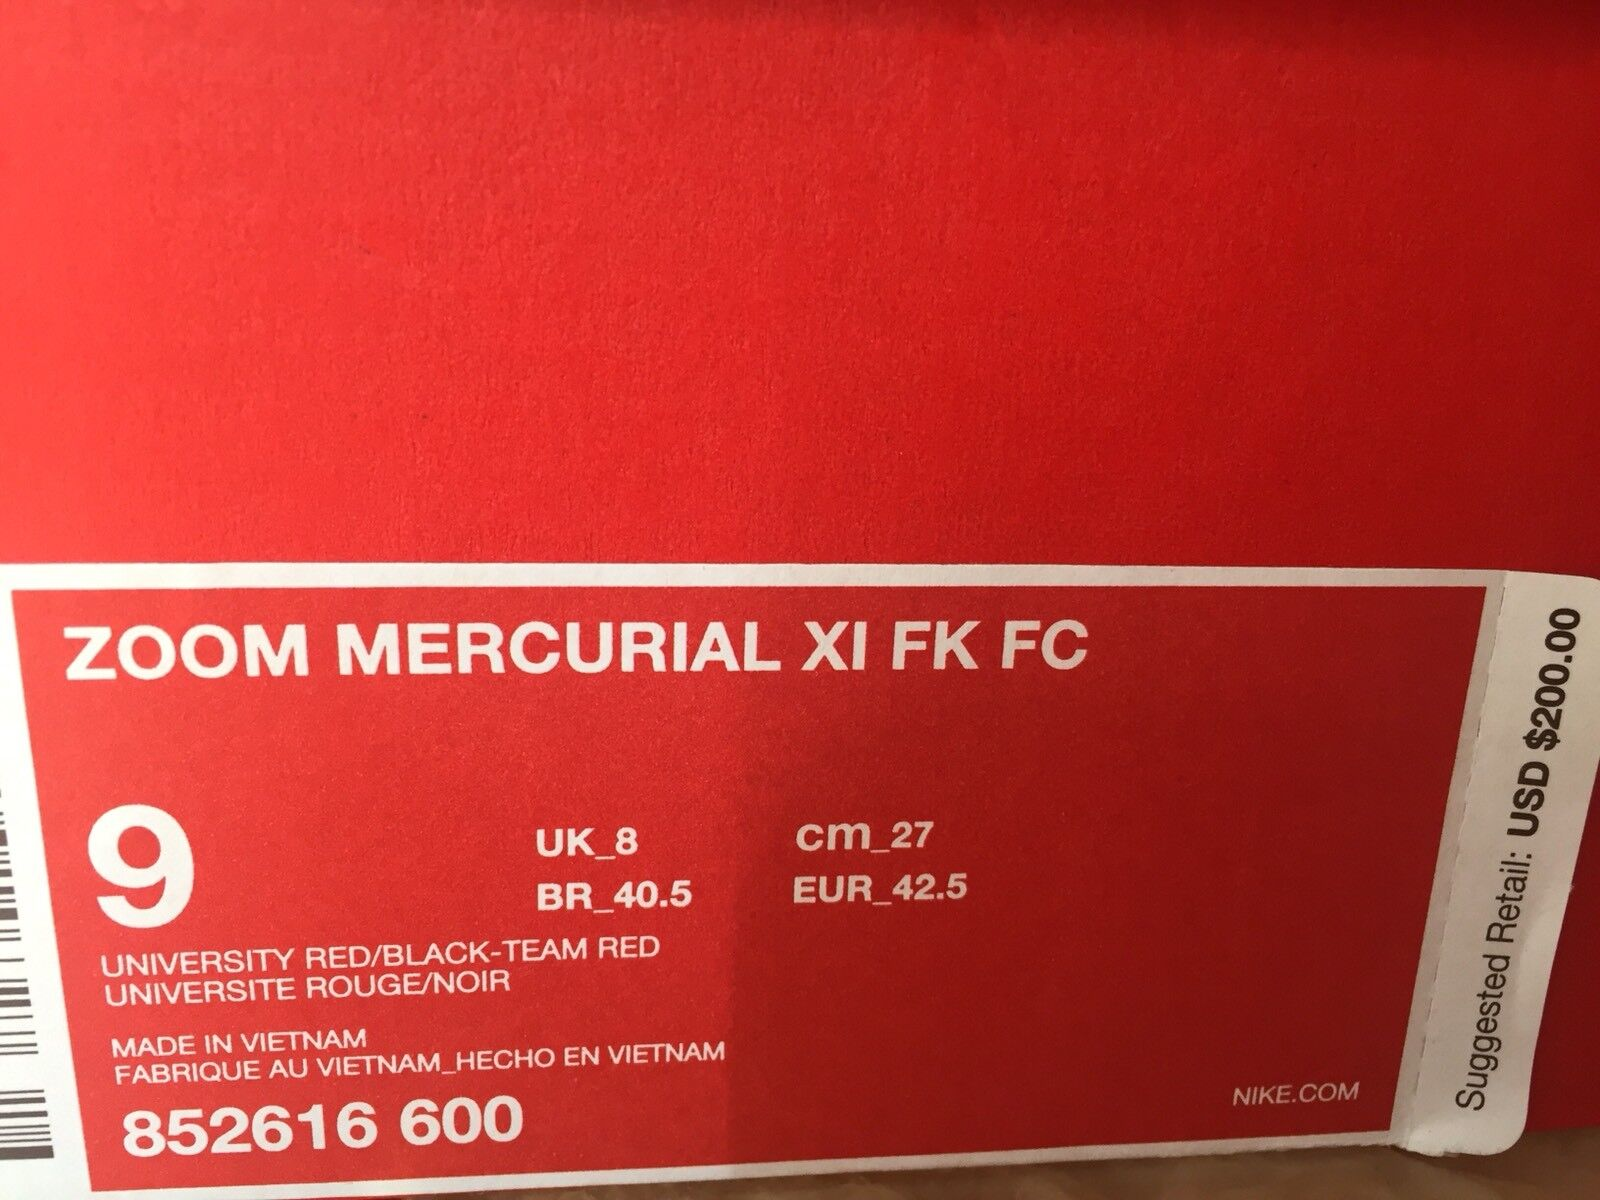 c413bb67f25 ... 200 Nike Zoom Mercurial XI Flyknit FC FC FC 9 Soccer shoes Black Red  Bred 852616